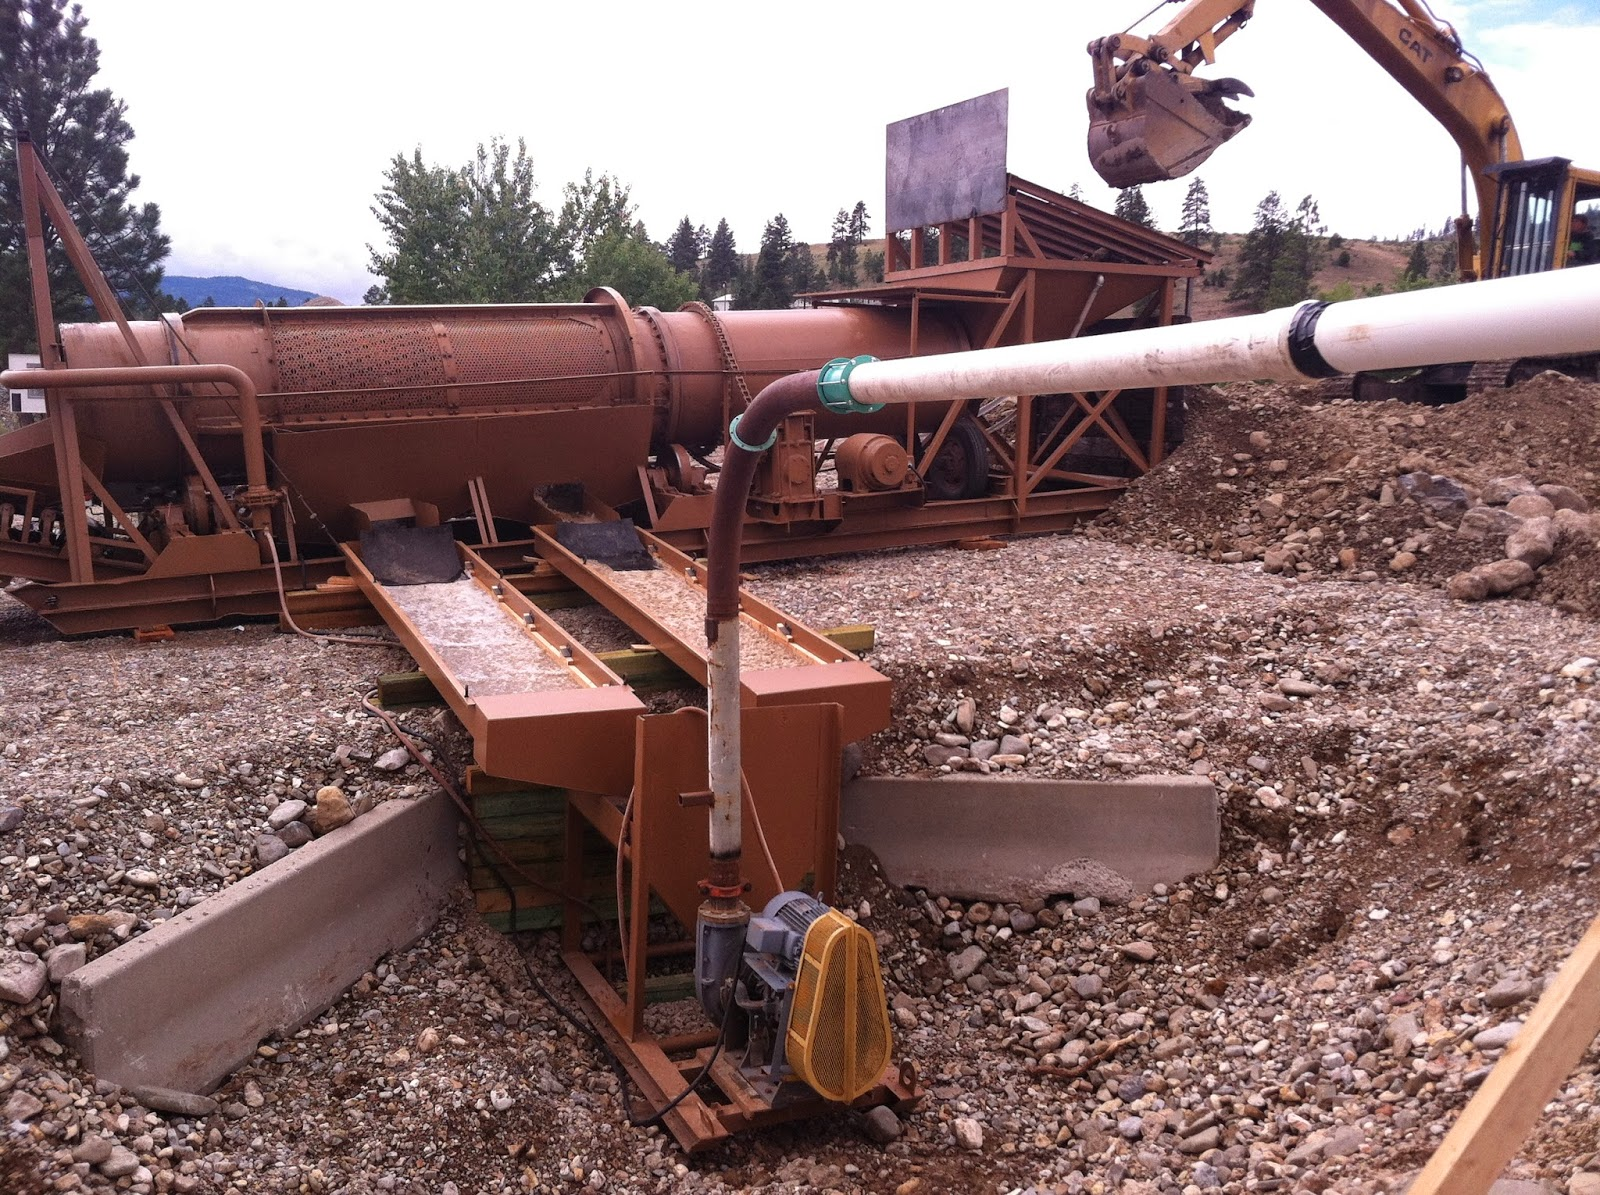 trommel wash plant going to recover some  Montana gold